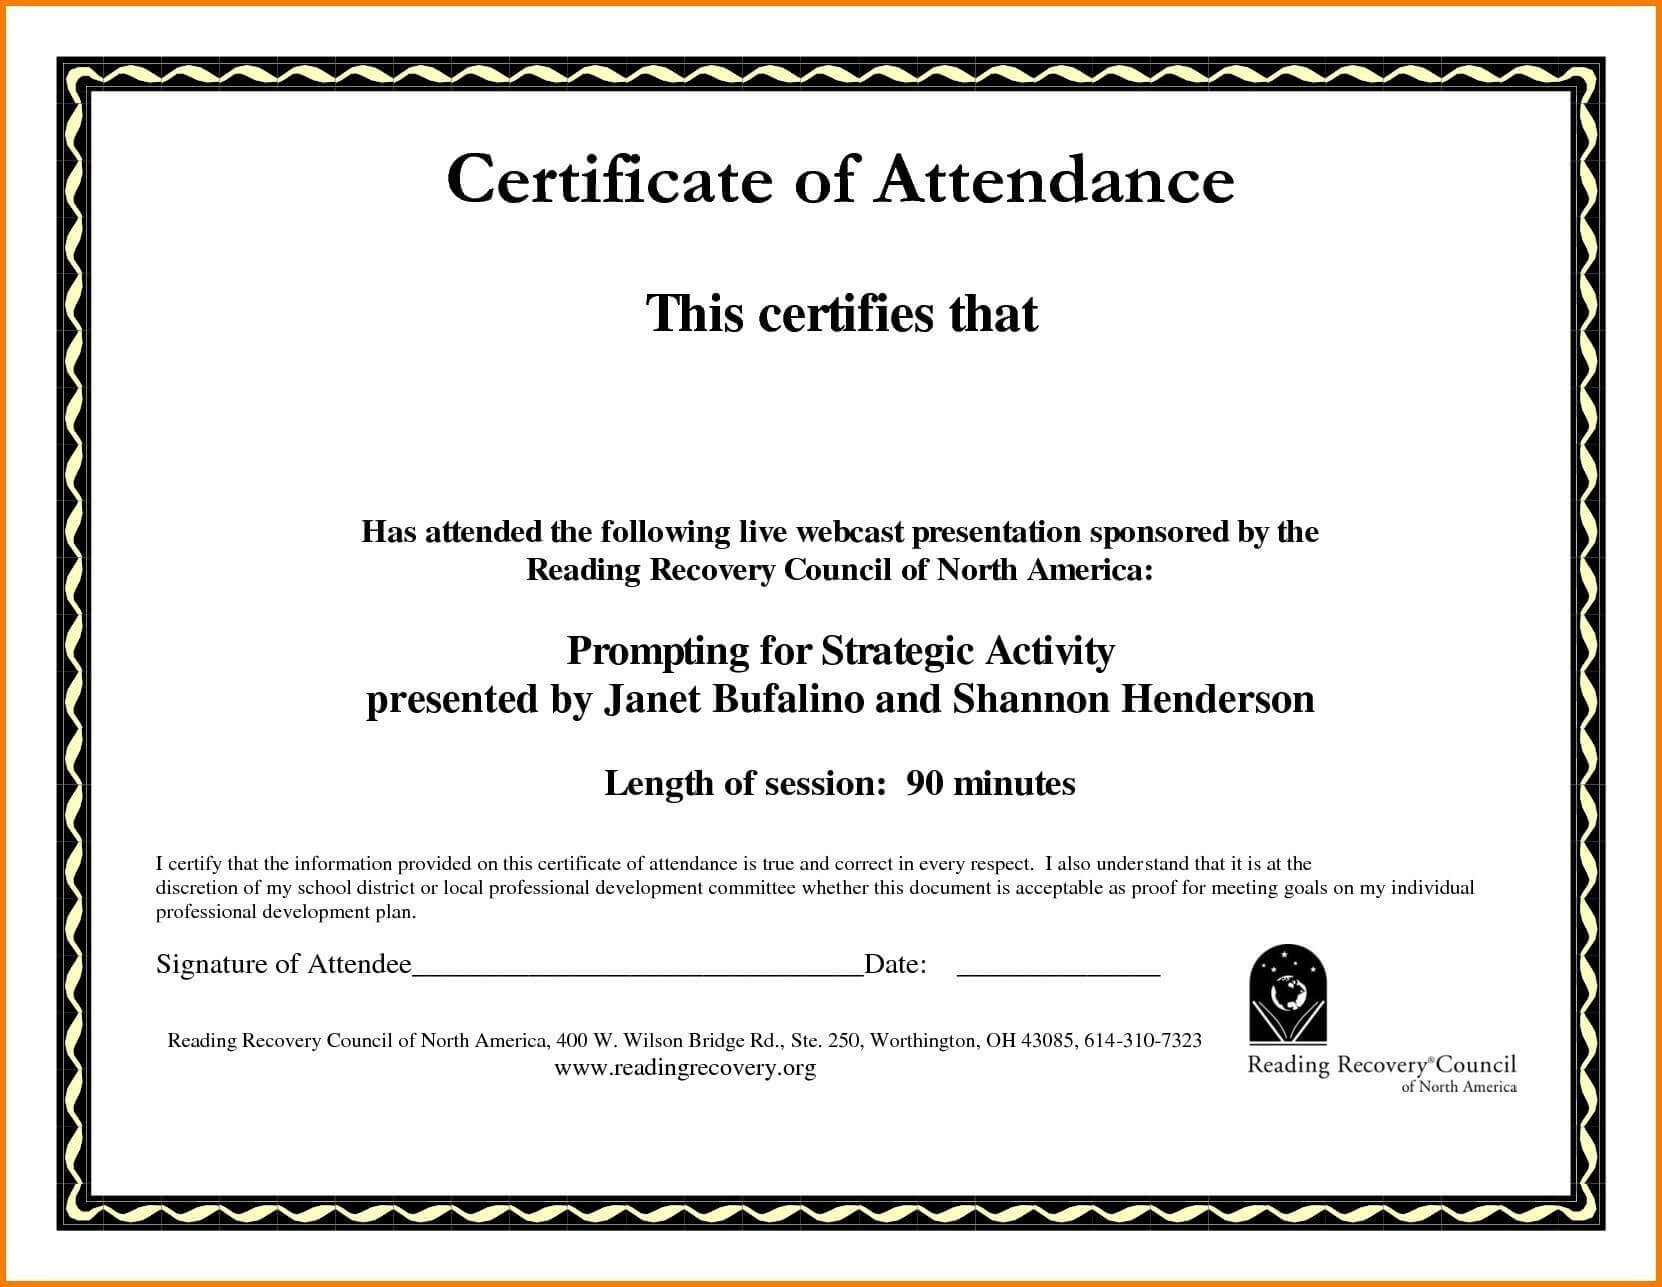 Fire Extinguisher Training Certificate Template Throughout Throughout Fire Extinguisher Certificate Template